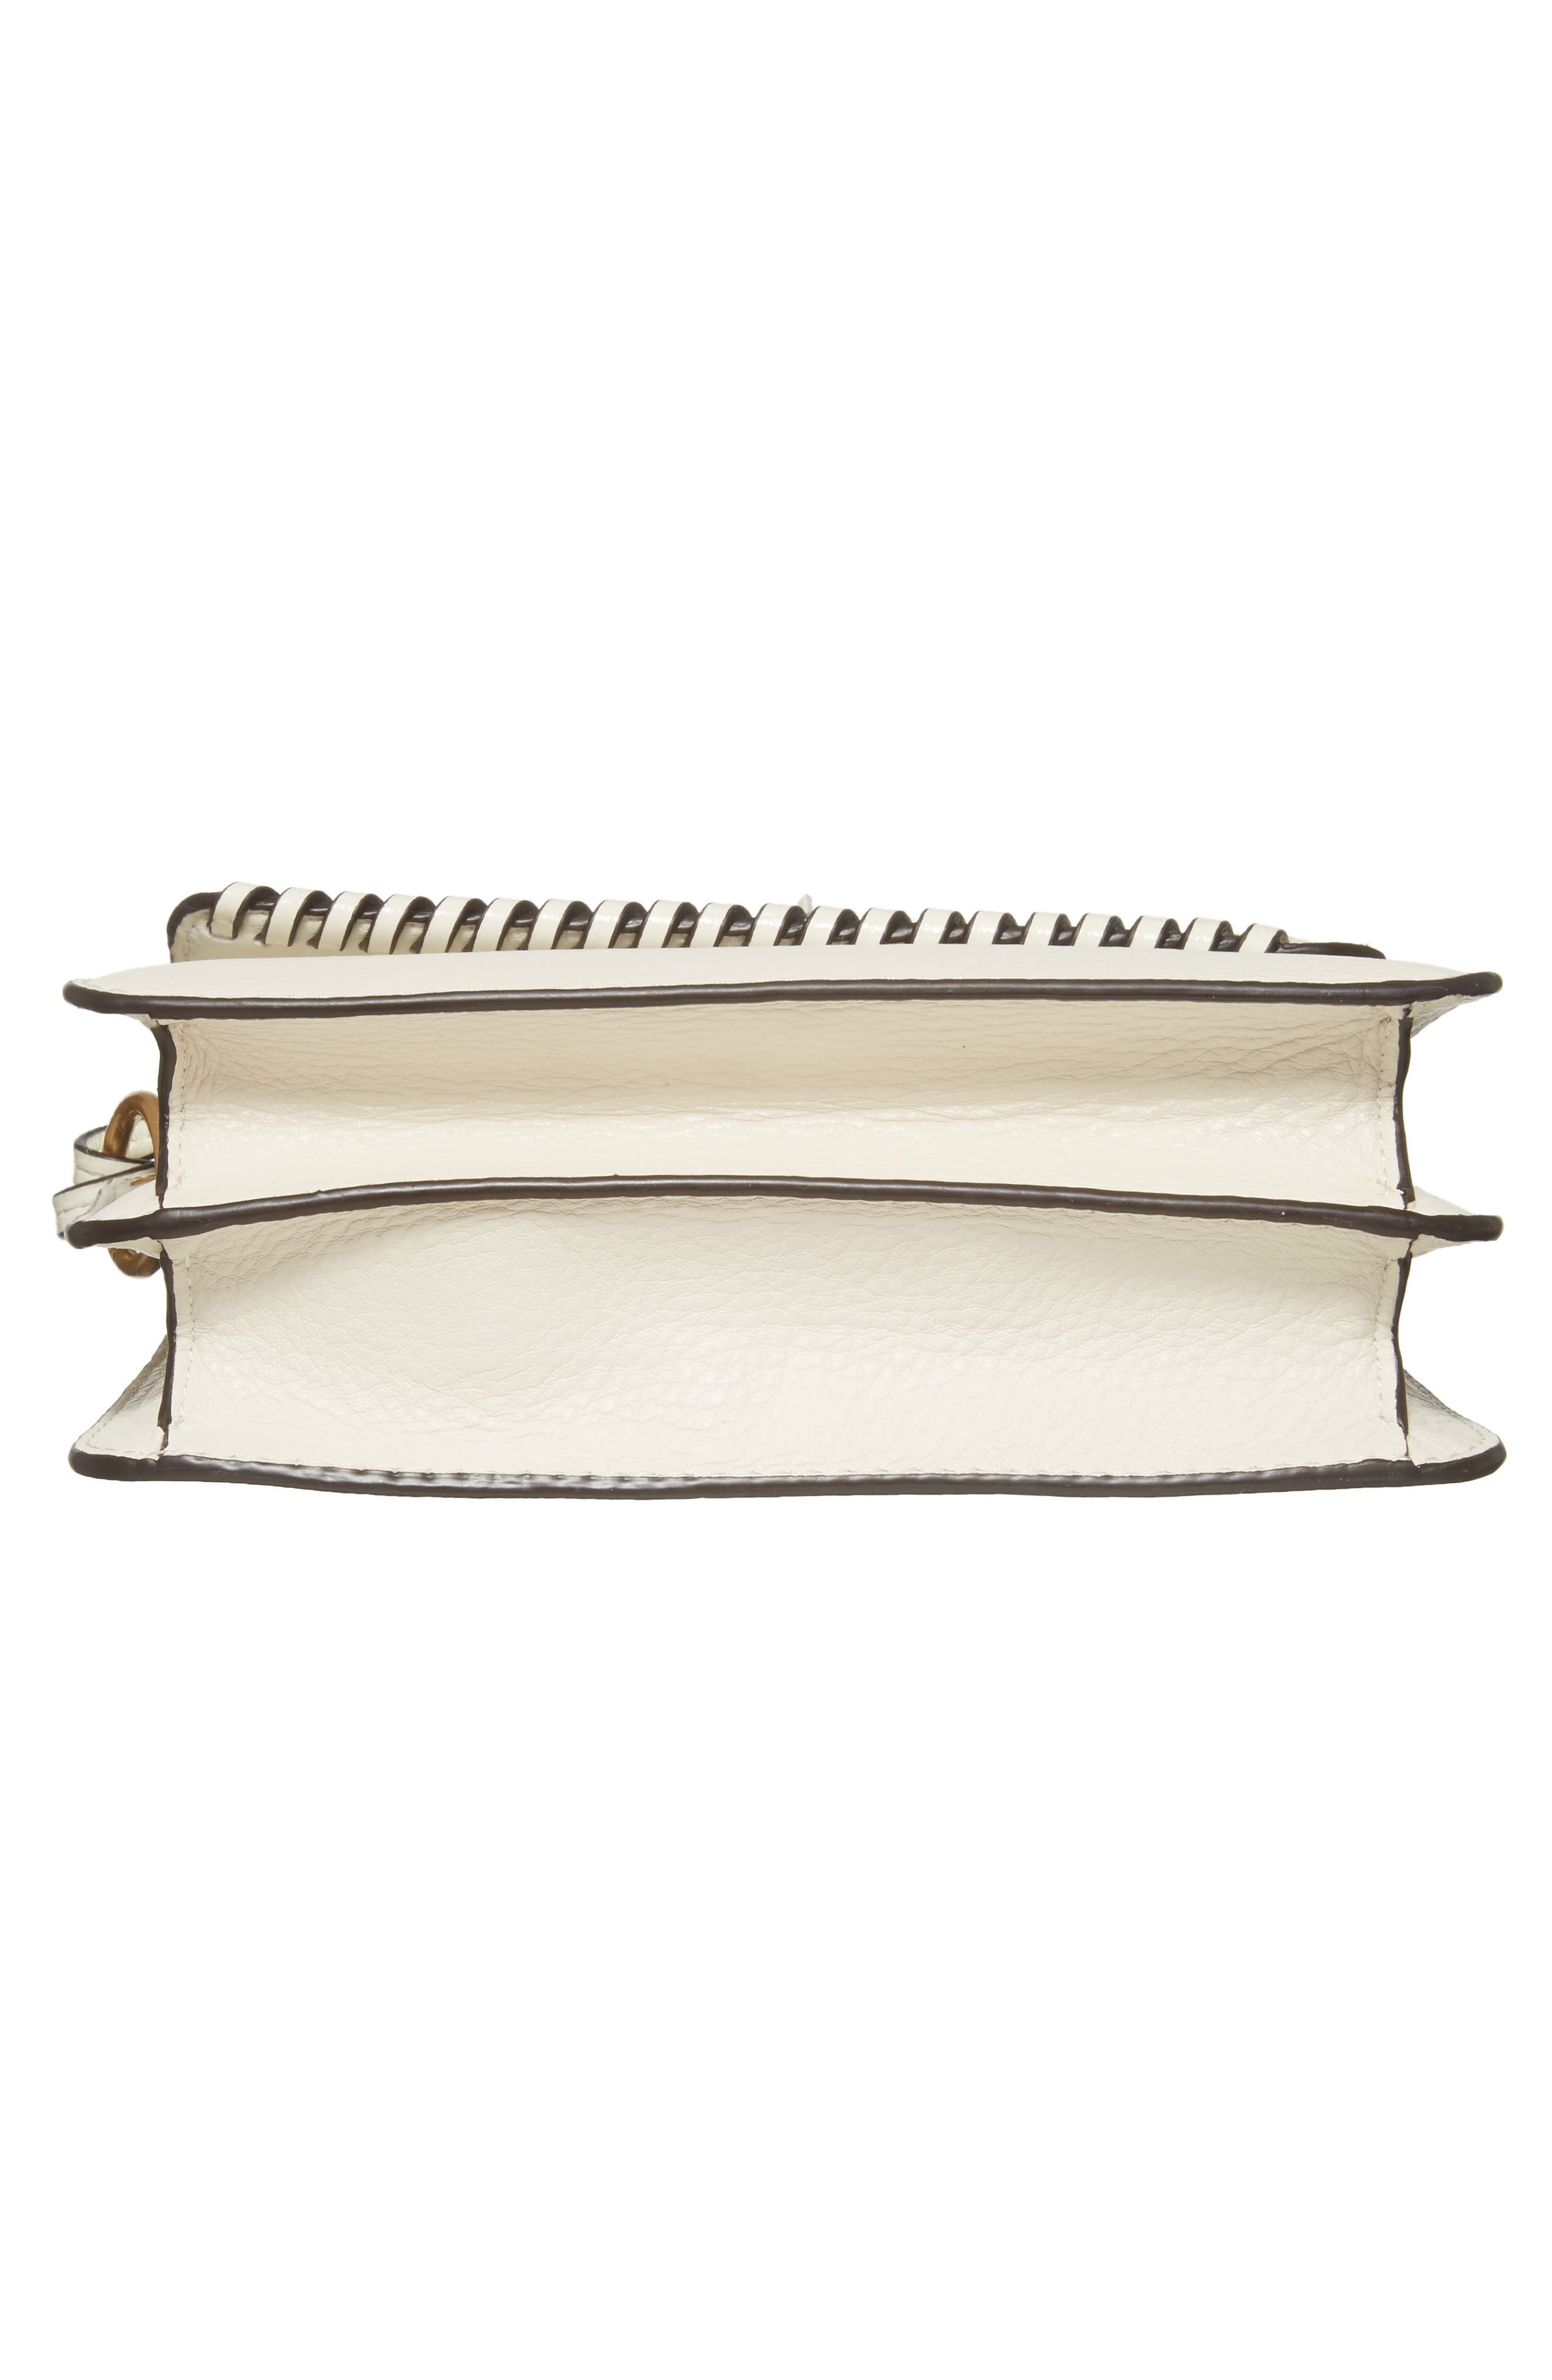 McGraw Whipstitch Leather Crossbody Bag,                             Alternate thumbnail 6, color,                             100